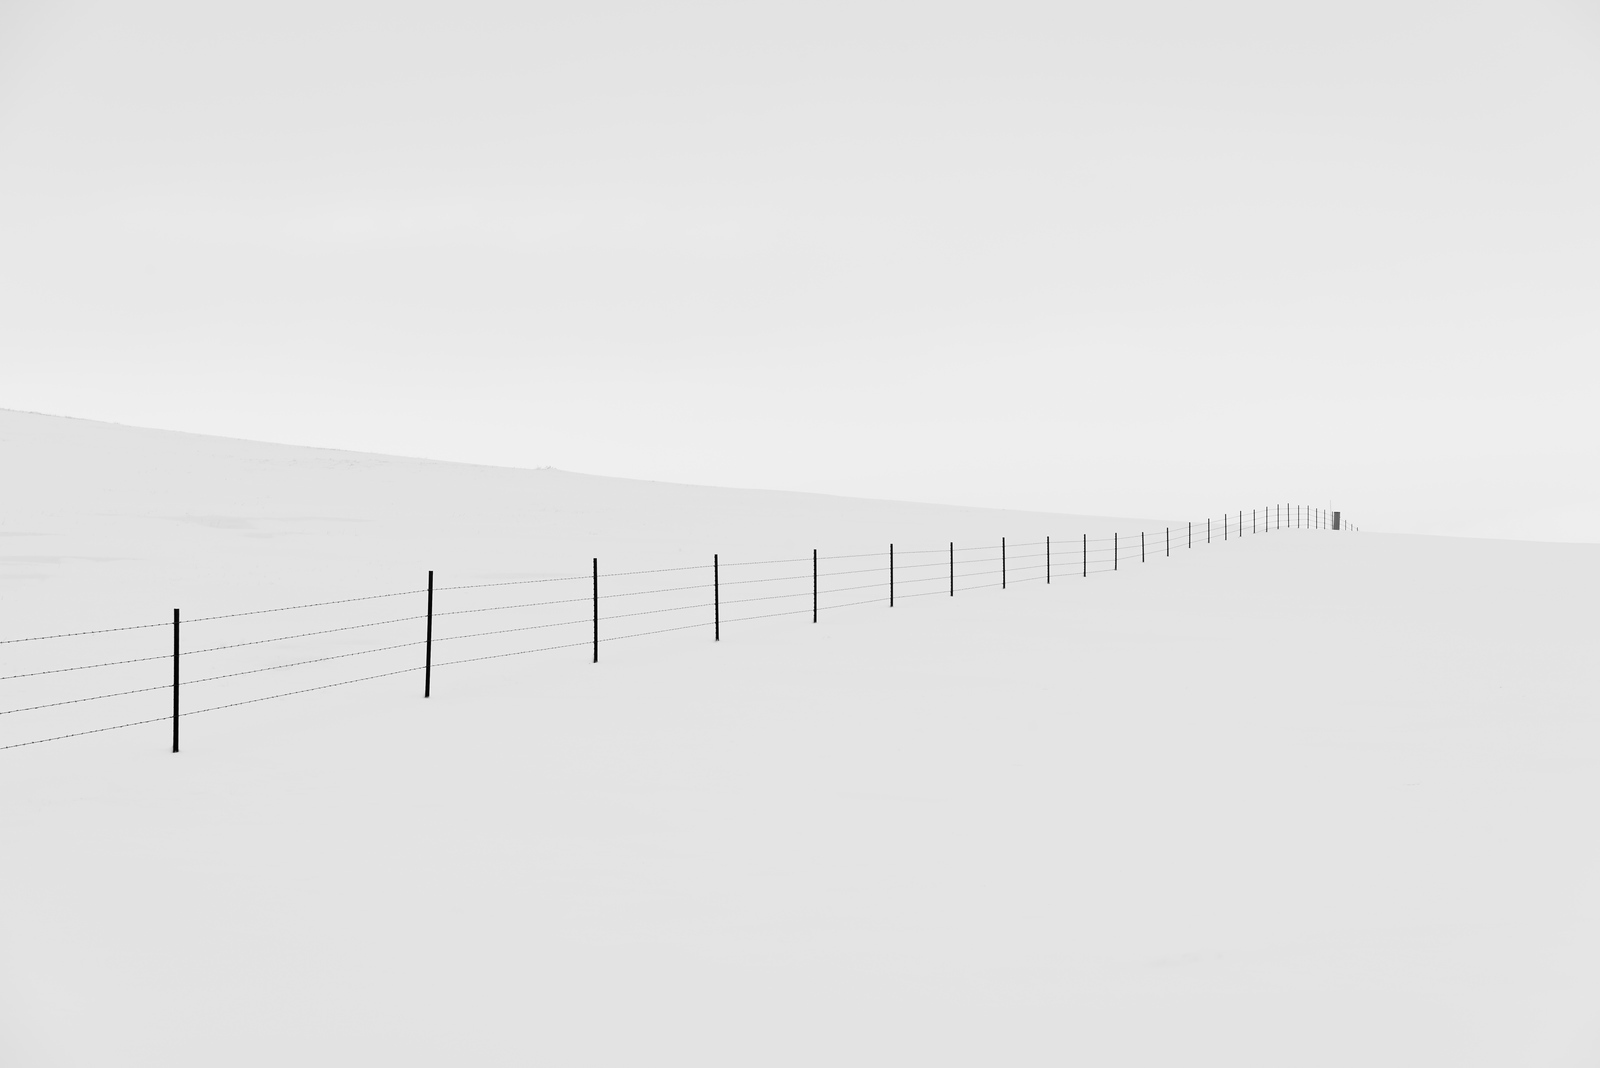 Fence in Snow 2.1